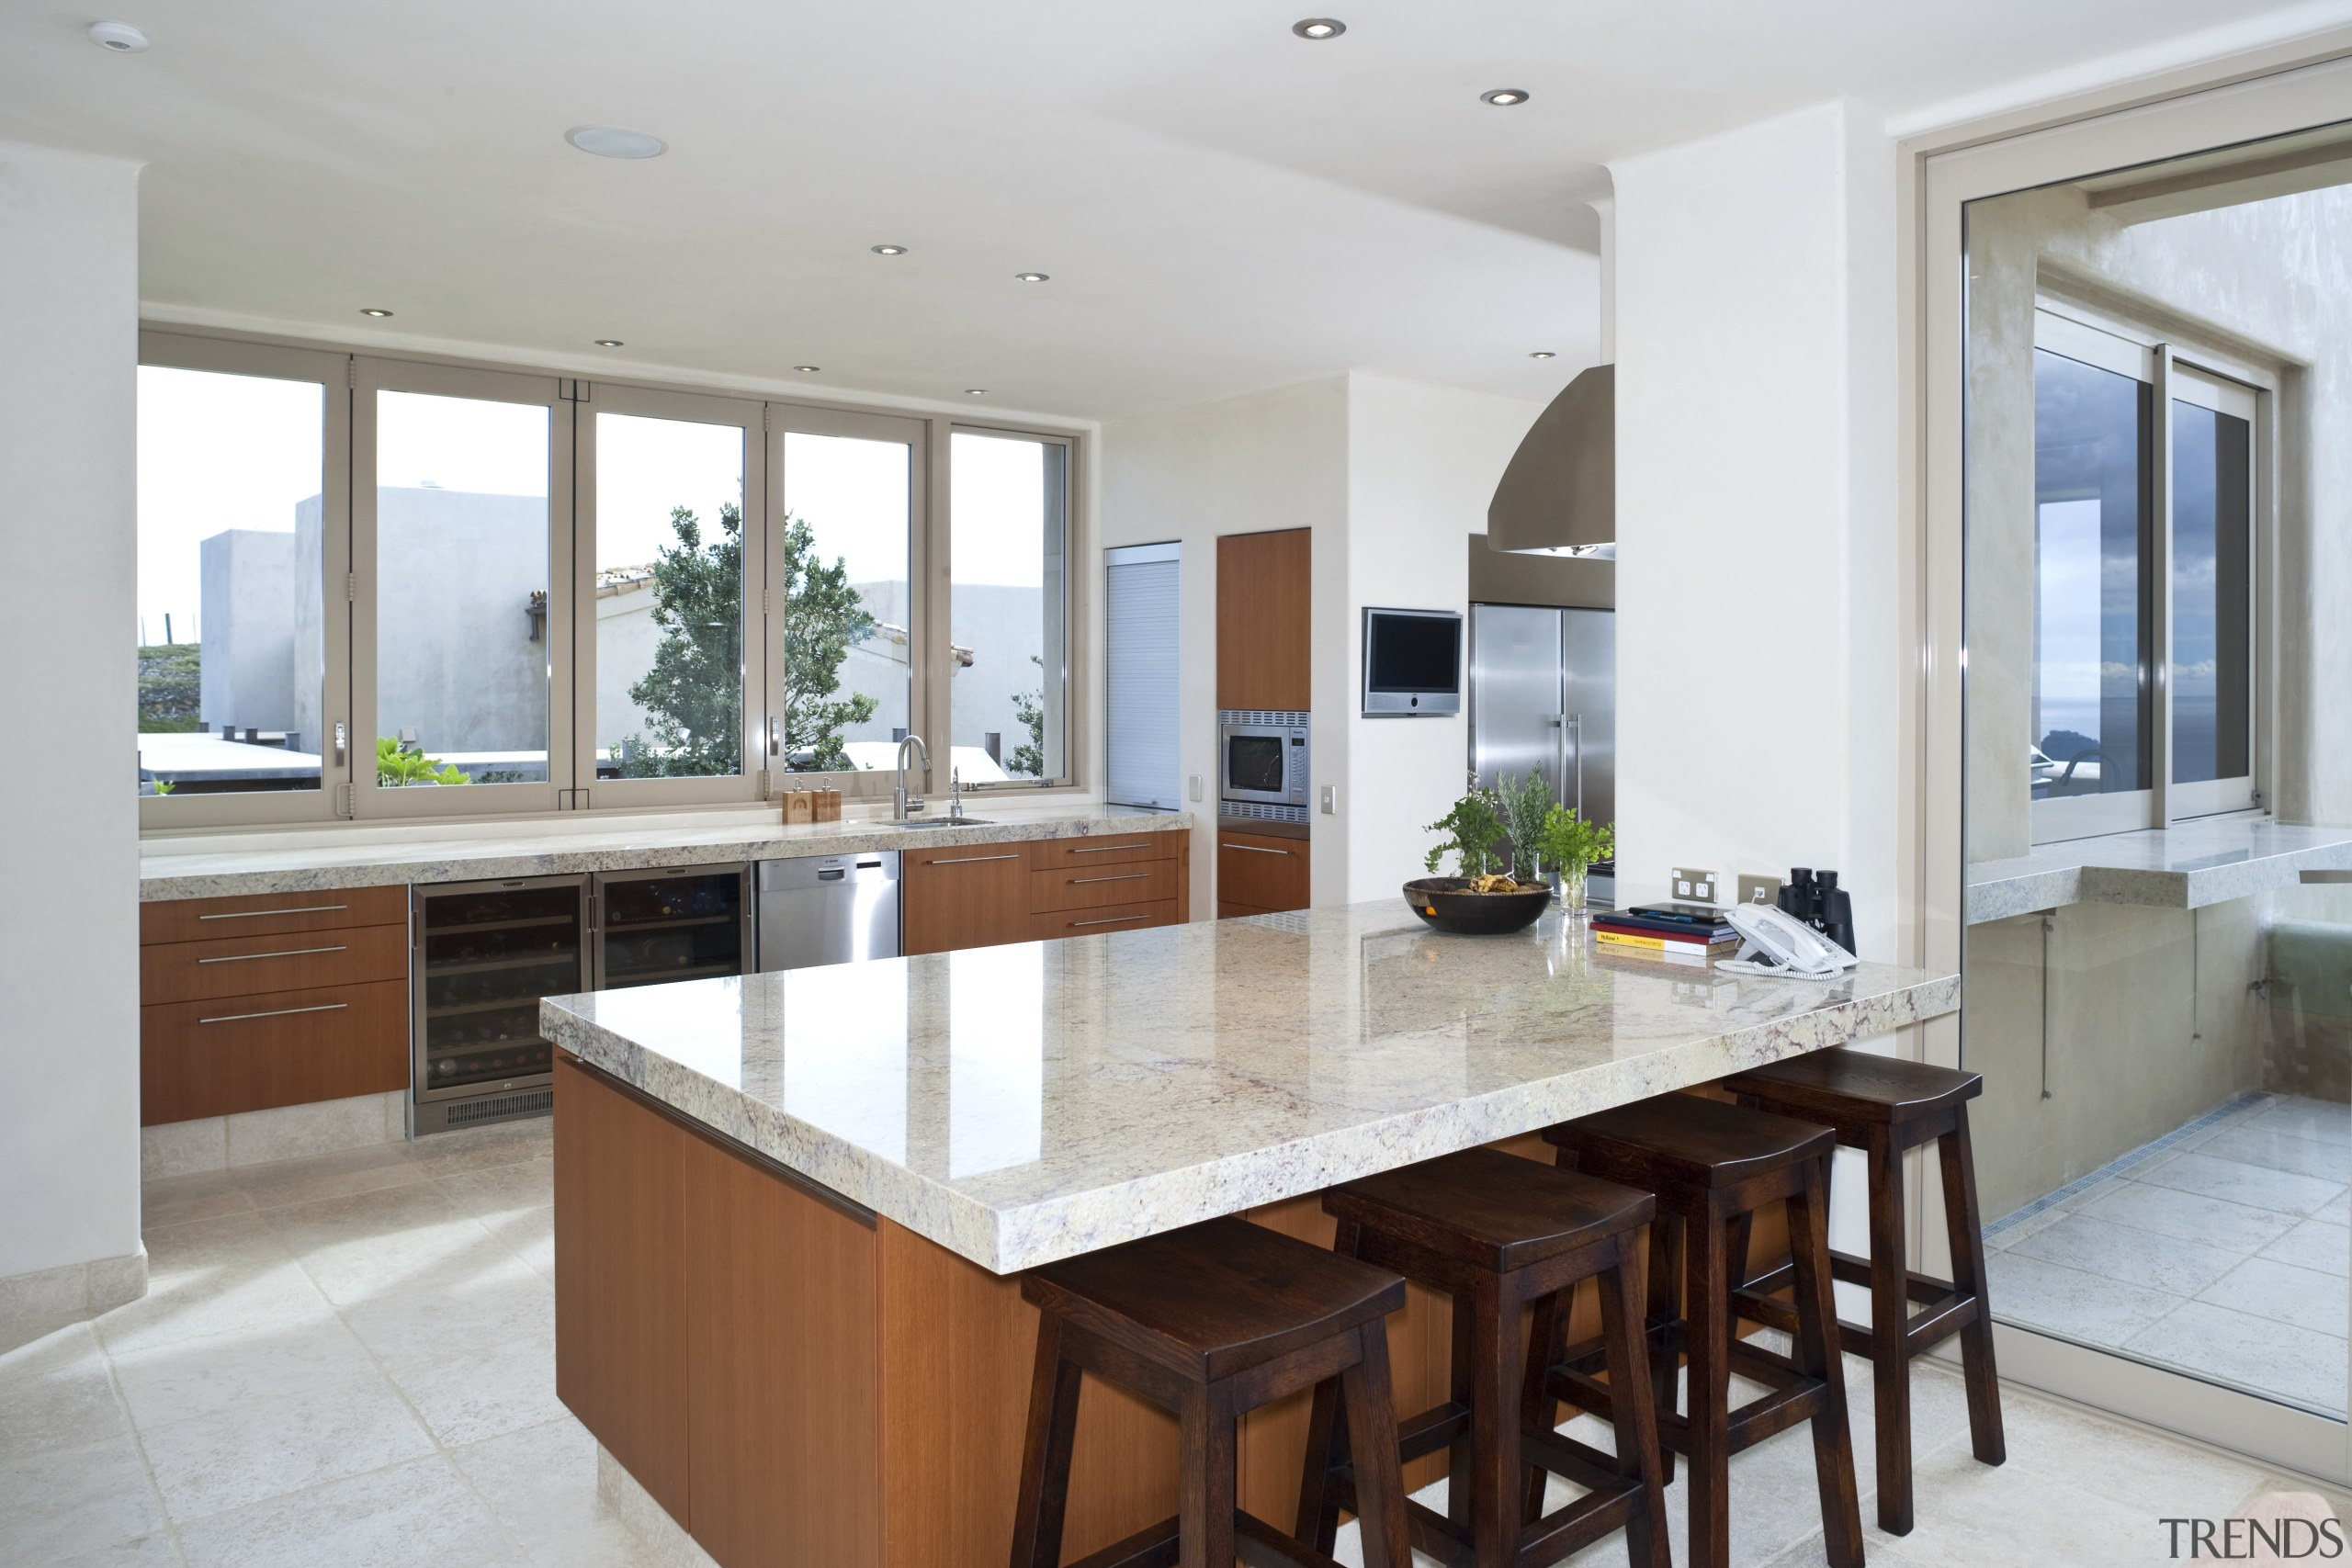 View of kitchen which features island, bar stools, cabinetry, countertop, cuisine classique, estate, interior design, kitchen, property, real estate, gray, white